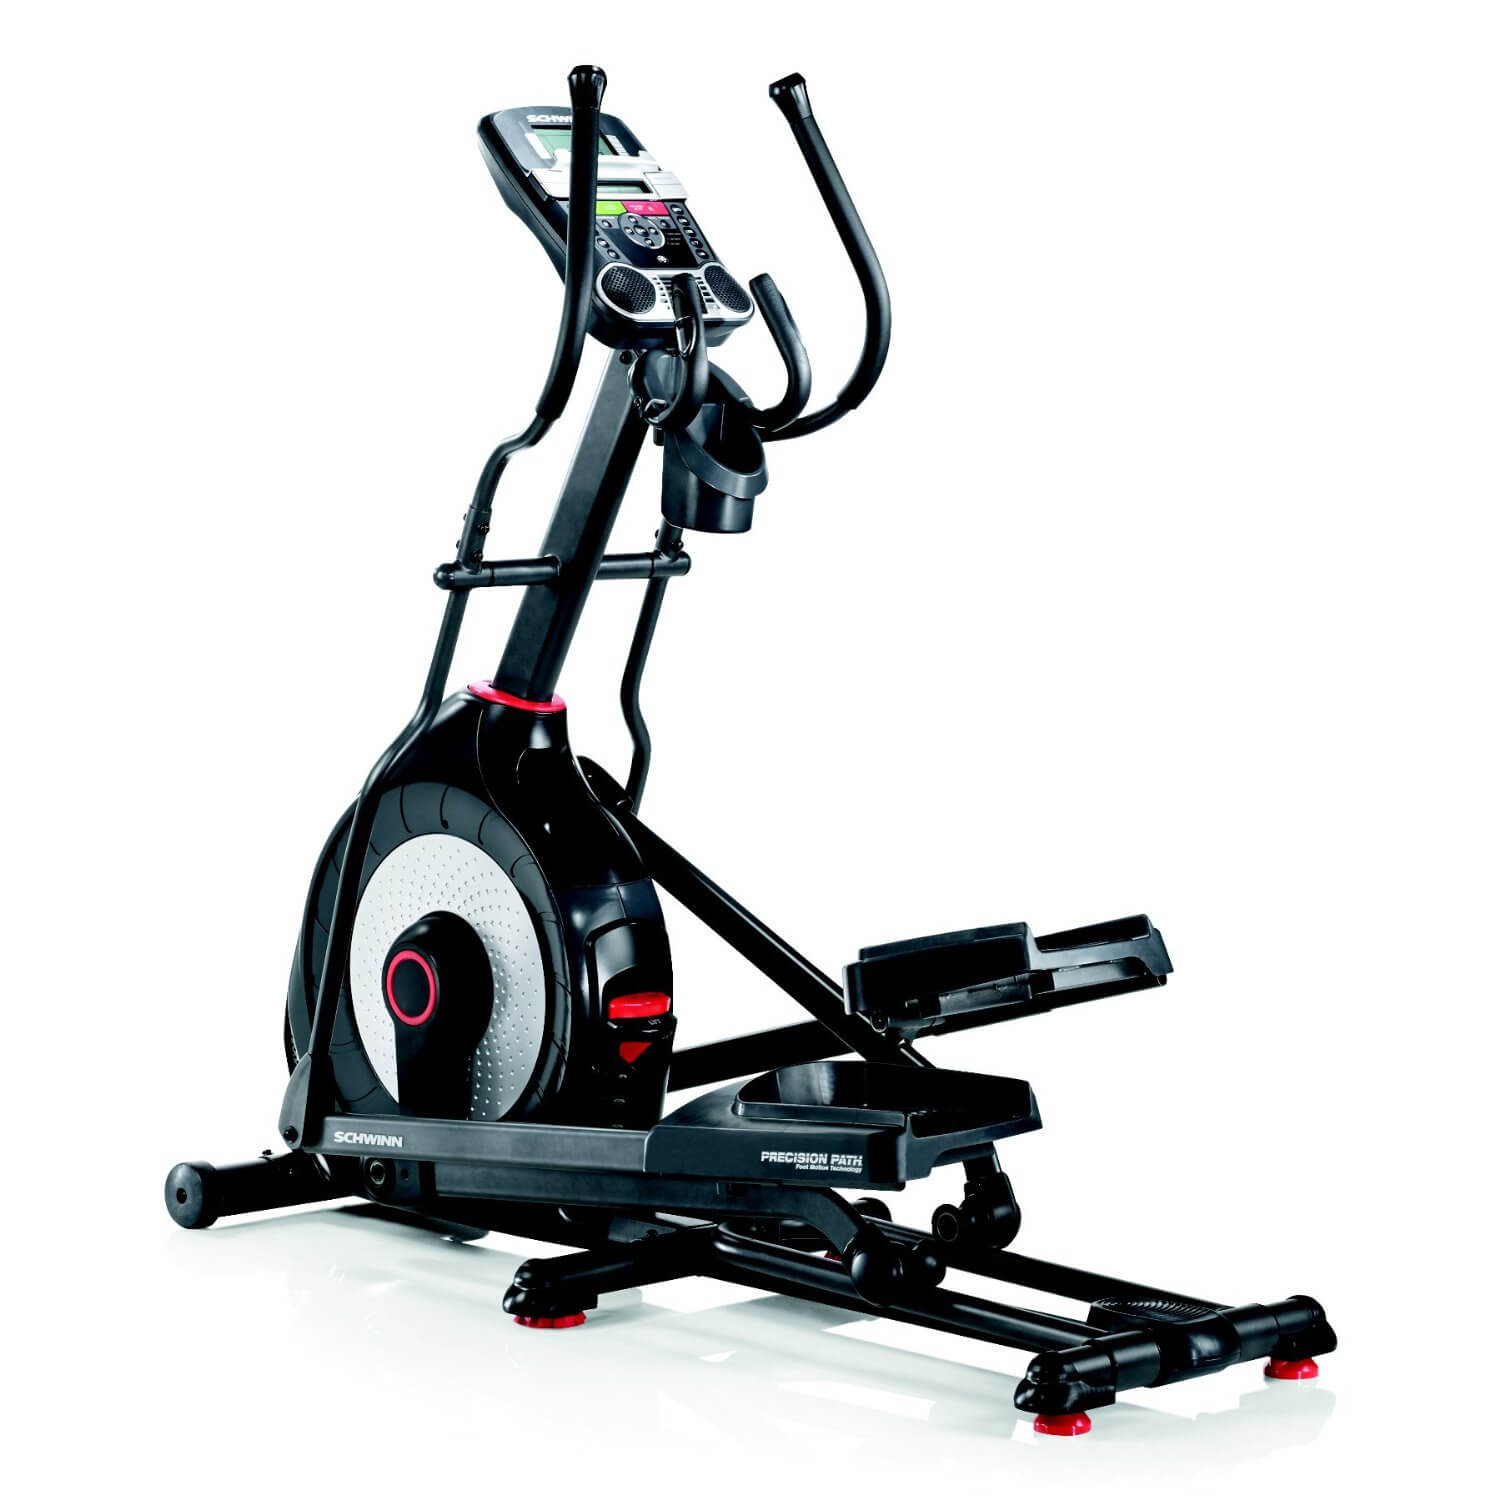 The Schwinn 430 does really well in the customer review department with an average 4 out of 5 stars from 150 customer reviews, it's both extremely popular and highly rated.